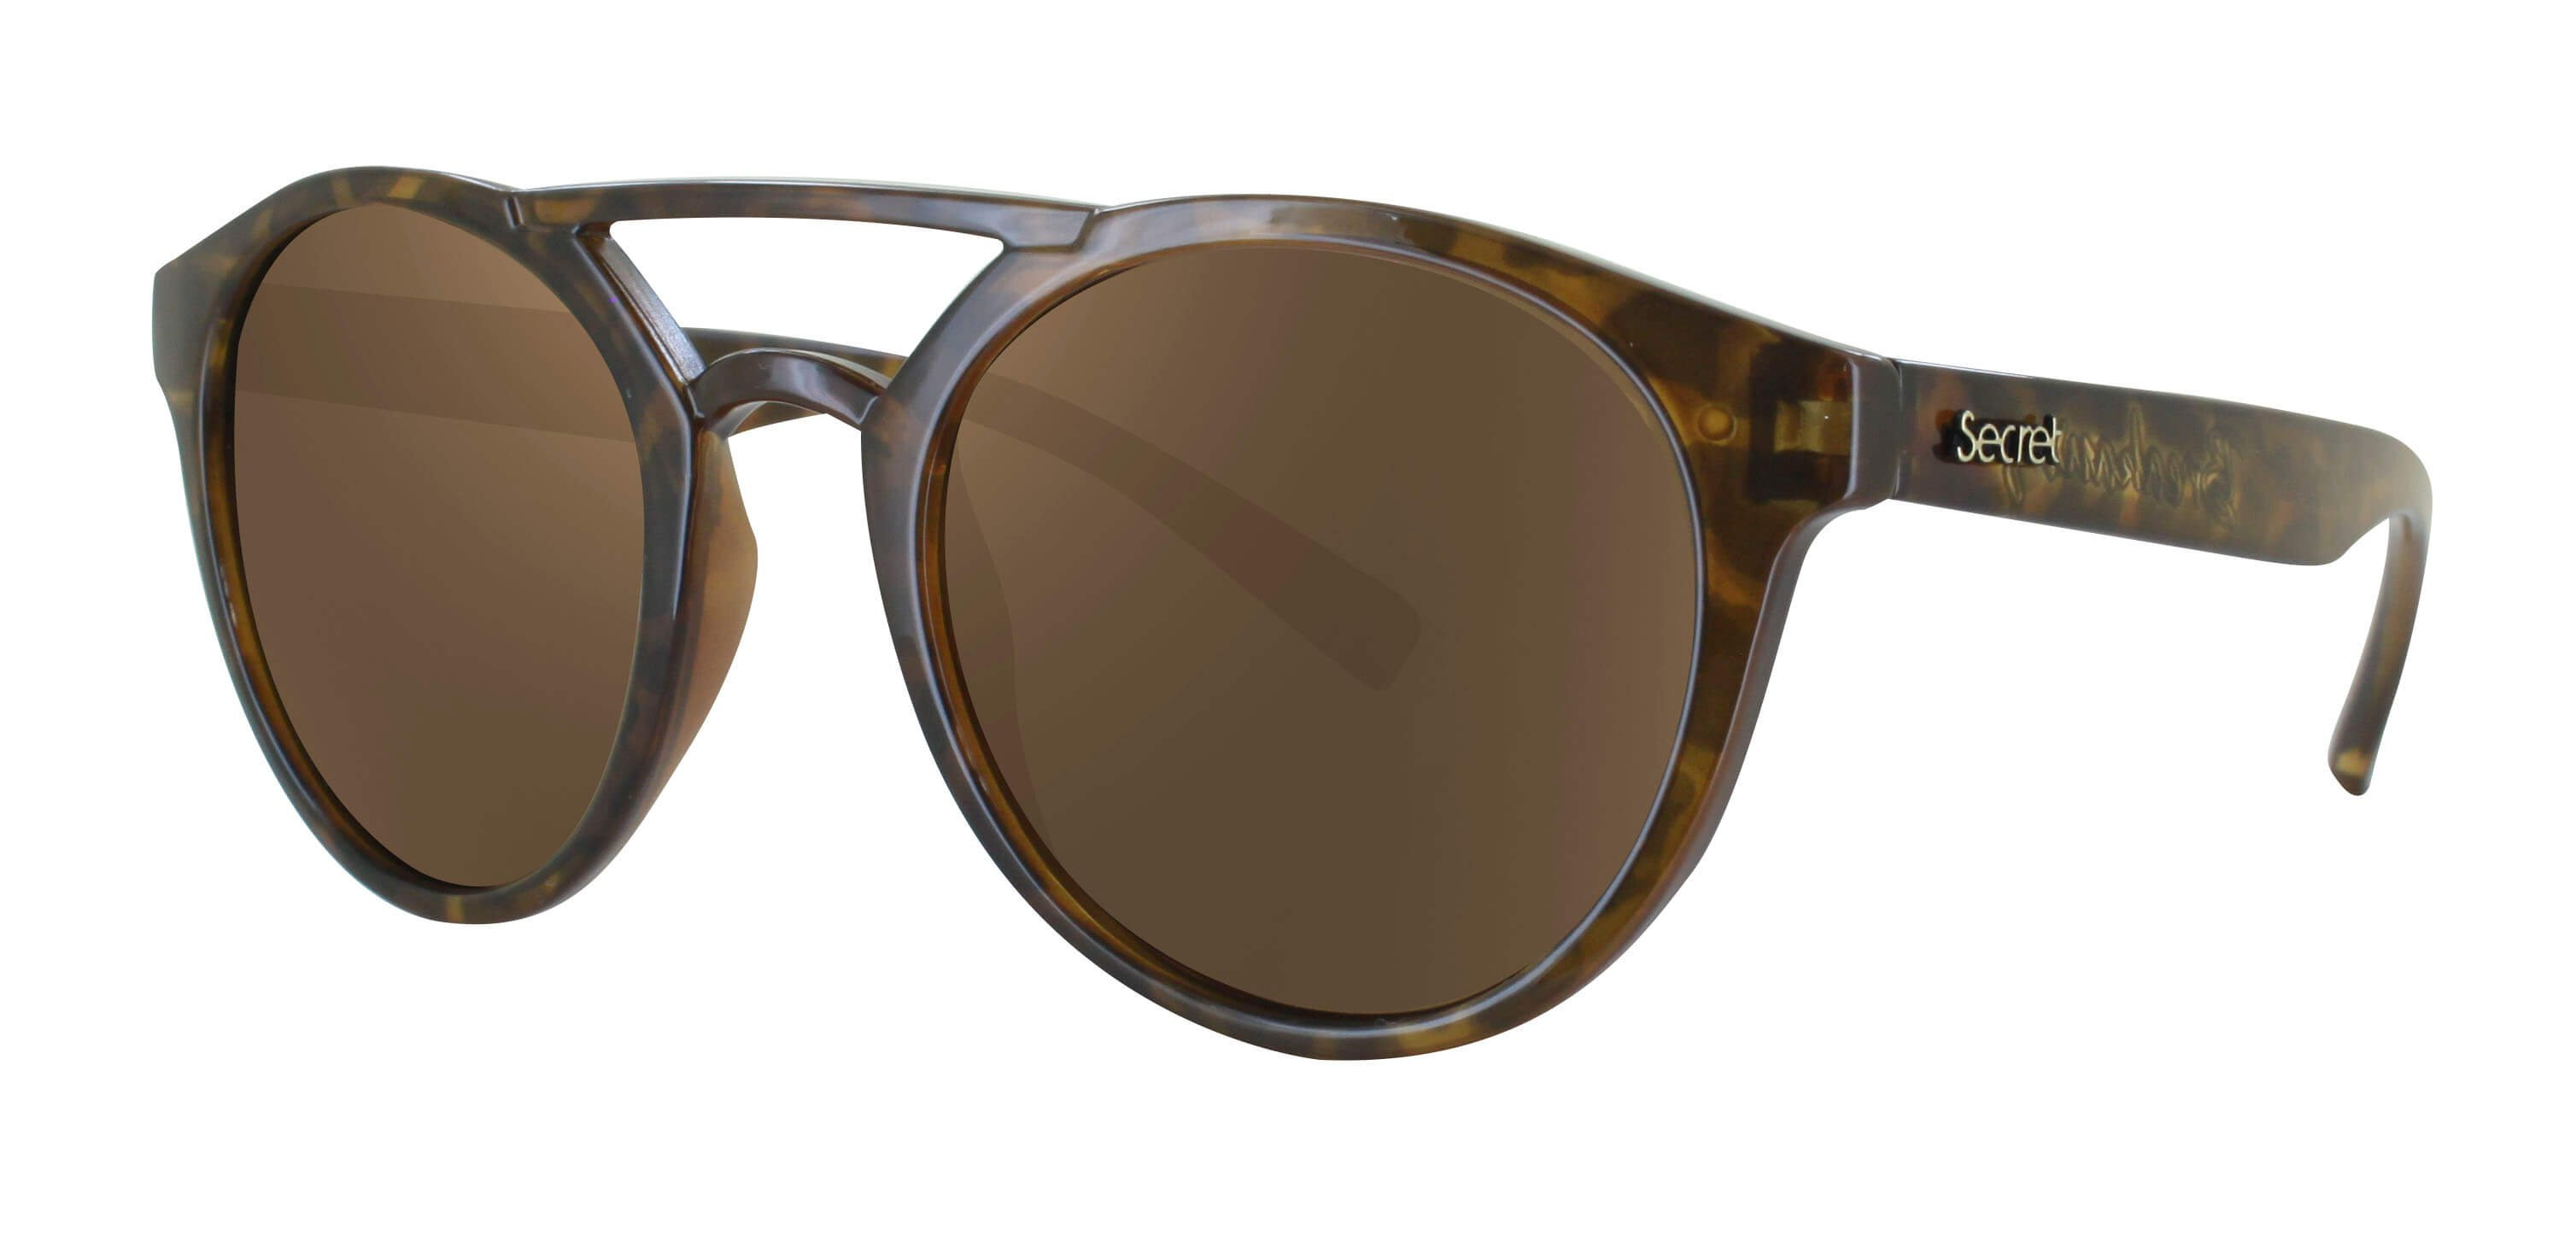 ÓC SECRET BREAKAWAY HAVANA TURTLE / POLARIZED BROWN